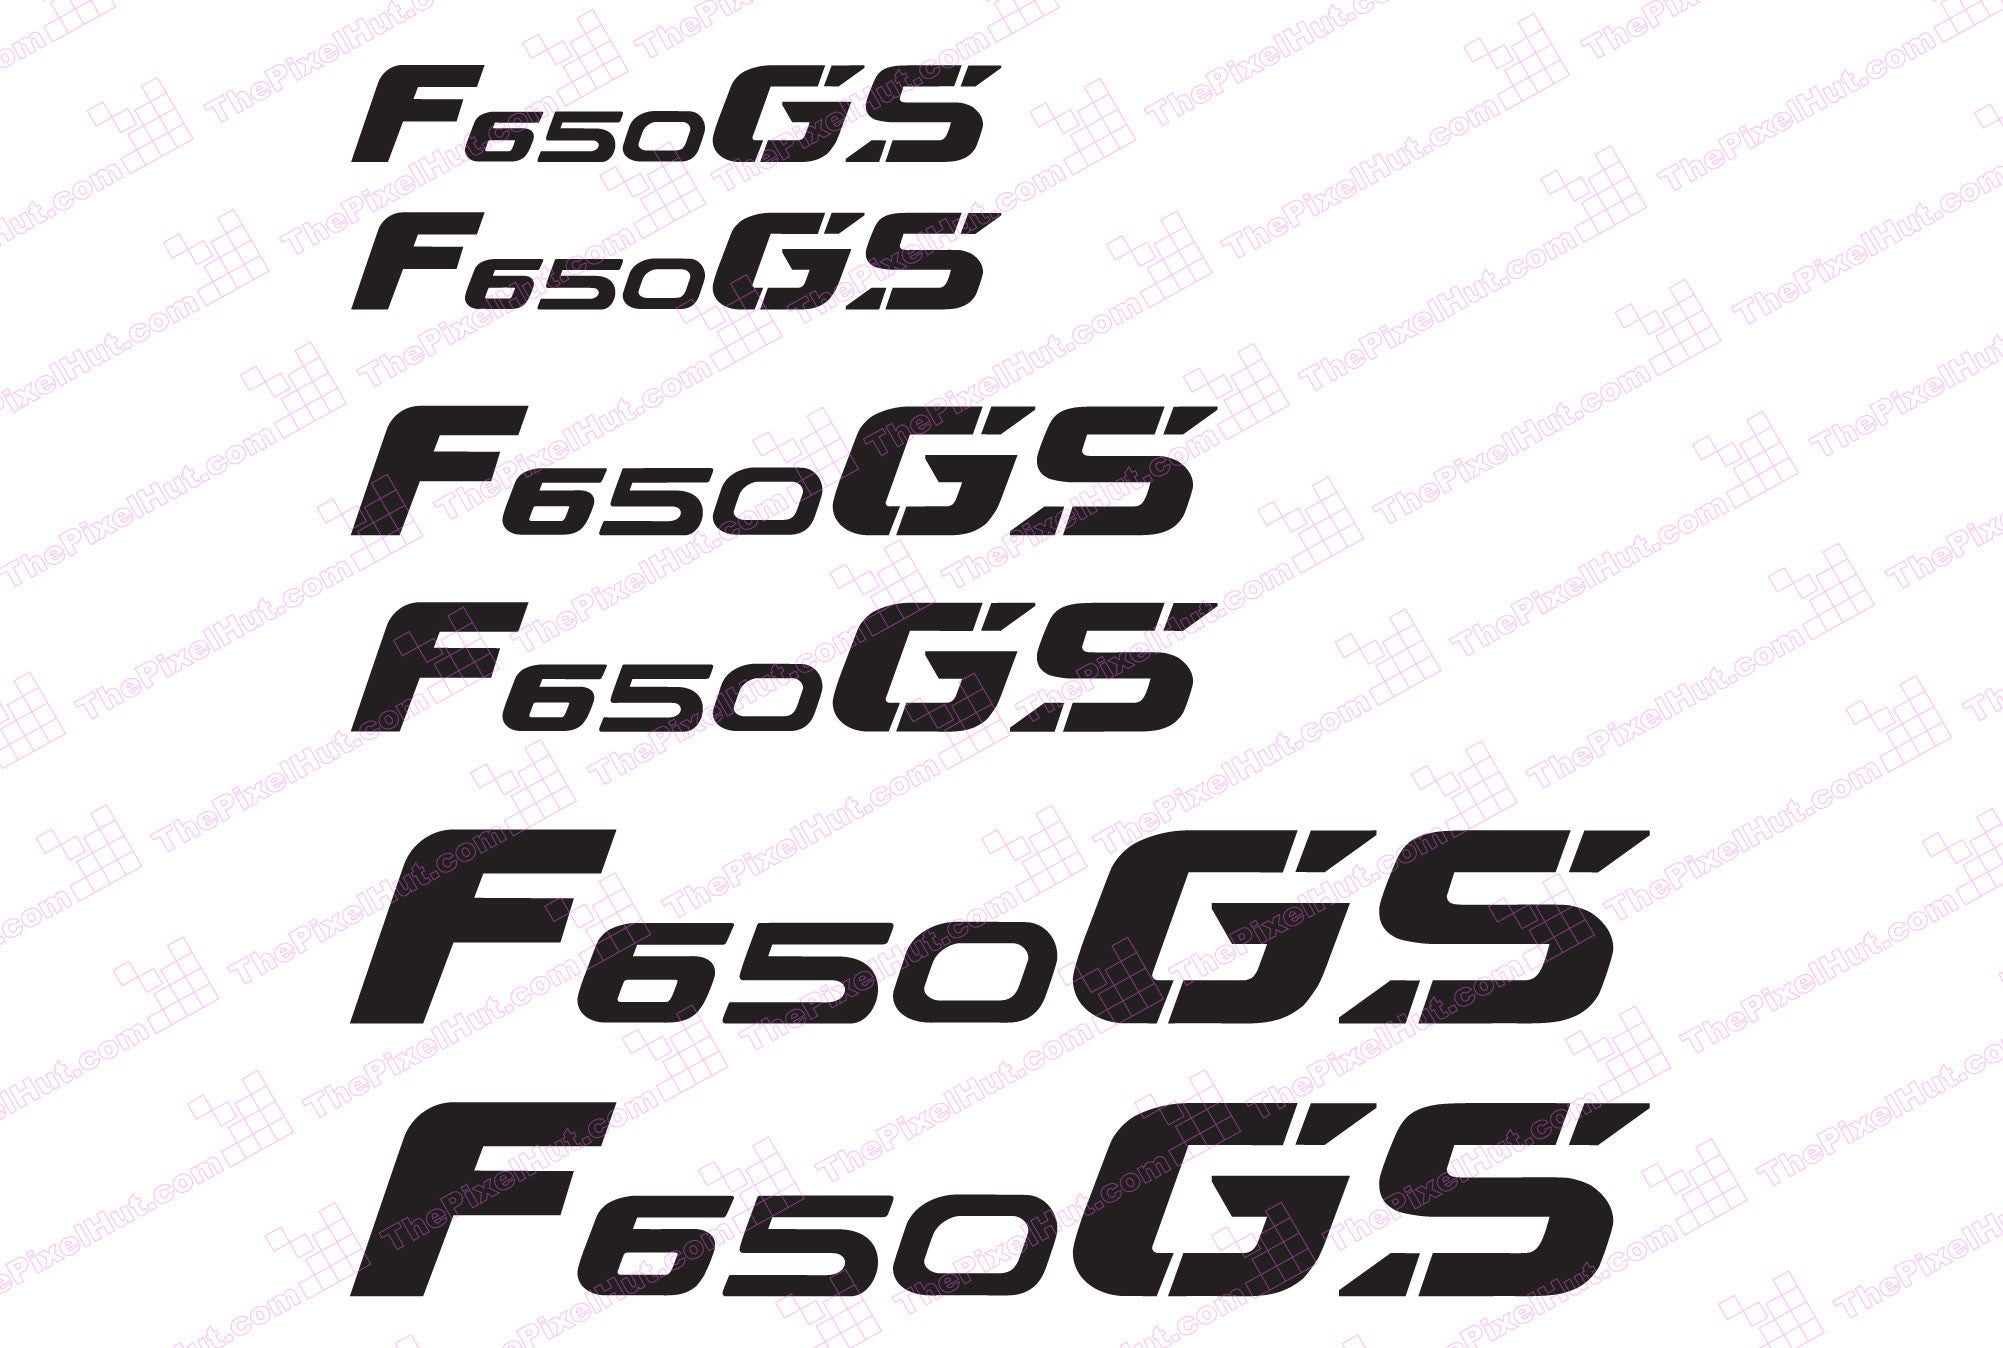 Bmw Gs Motorcycle Reflective Decal Kit For F650 Gs The